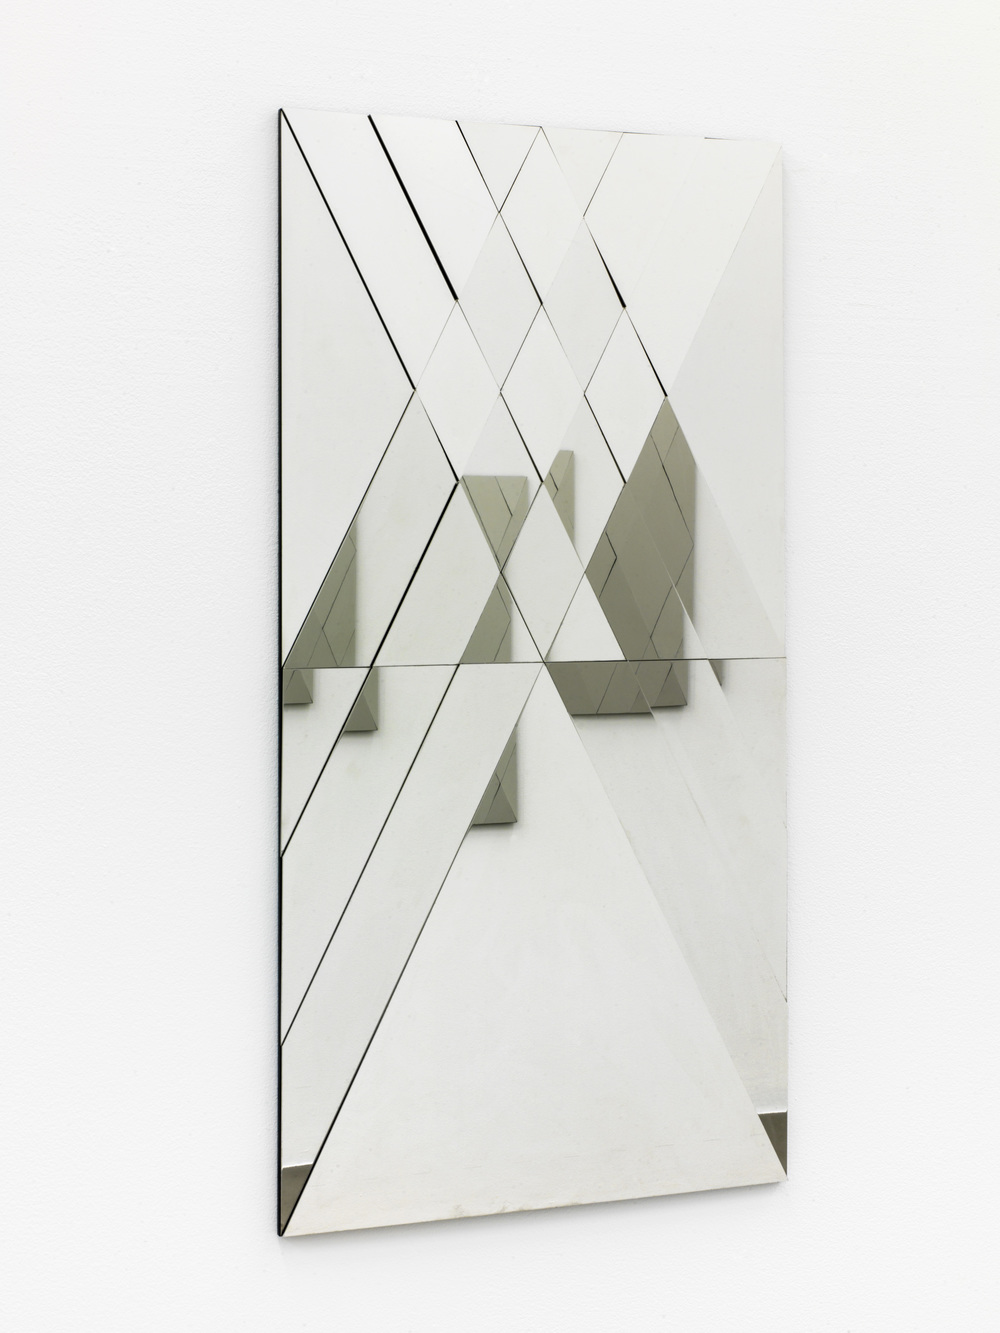 Untitled , 2015 polished stainless steel, 33 x 80 cm